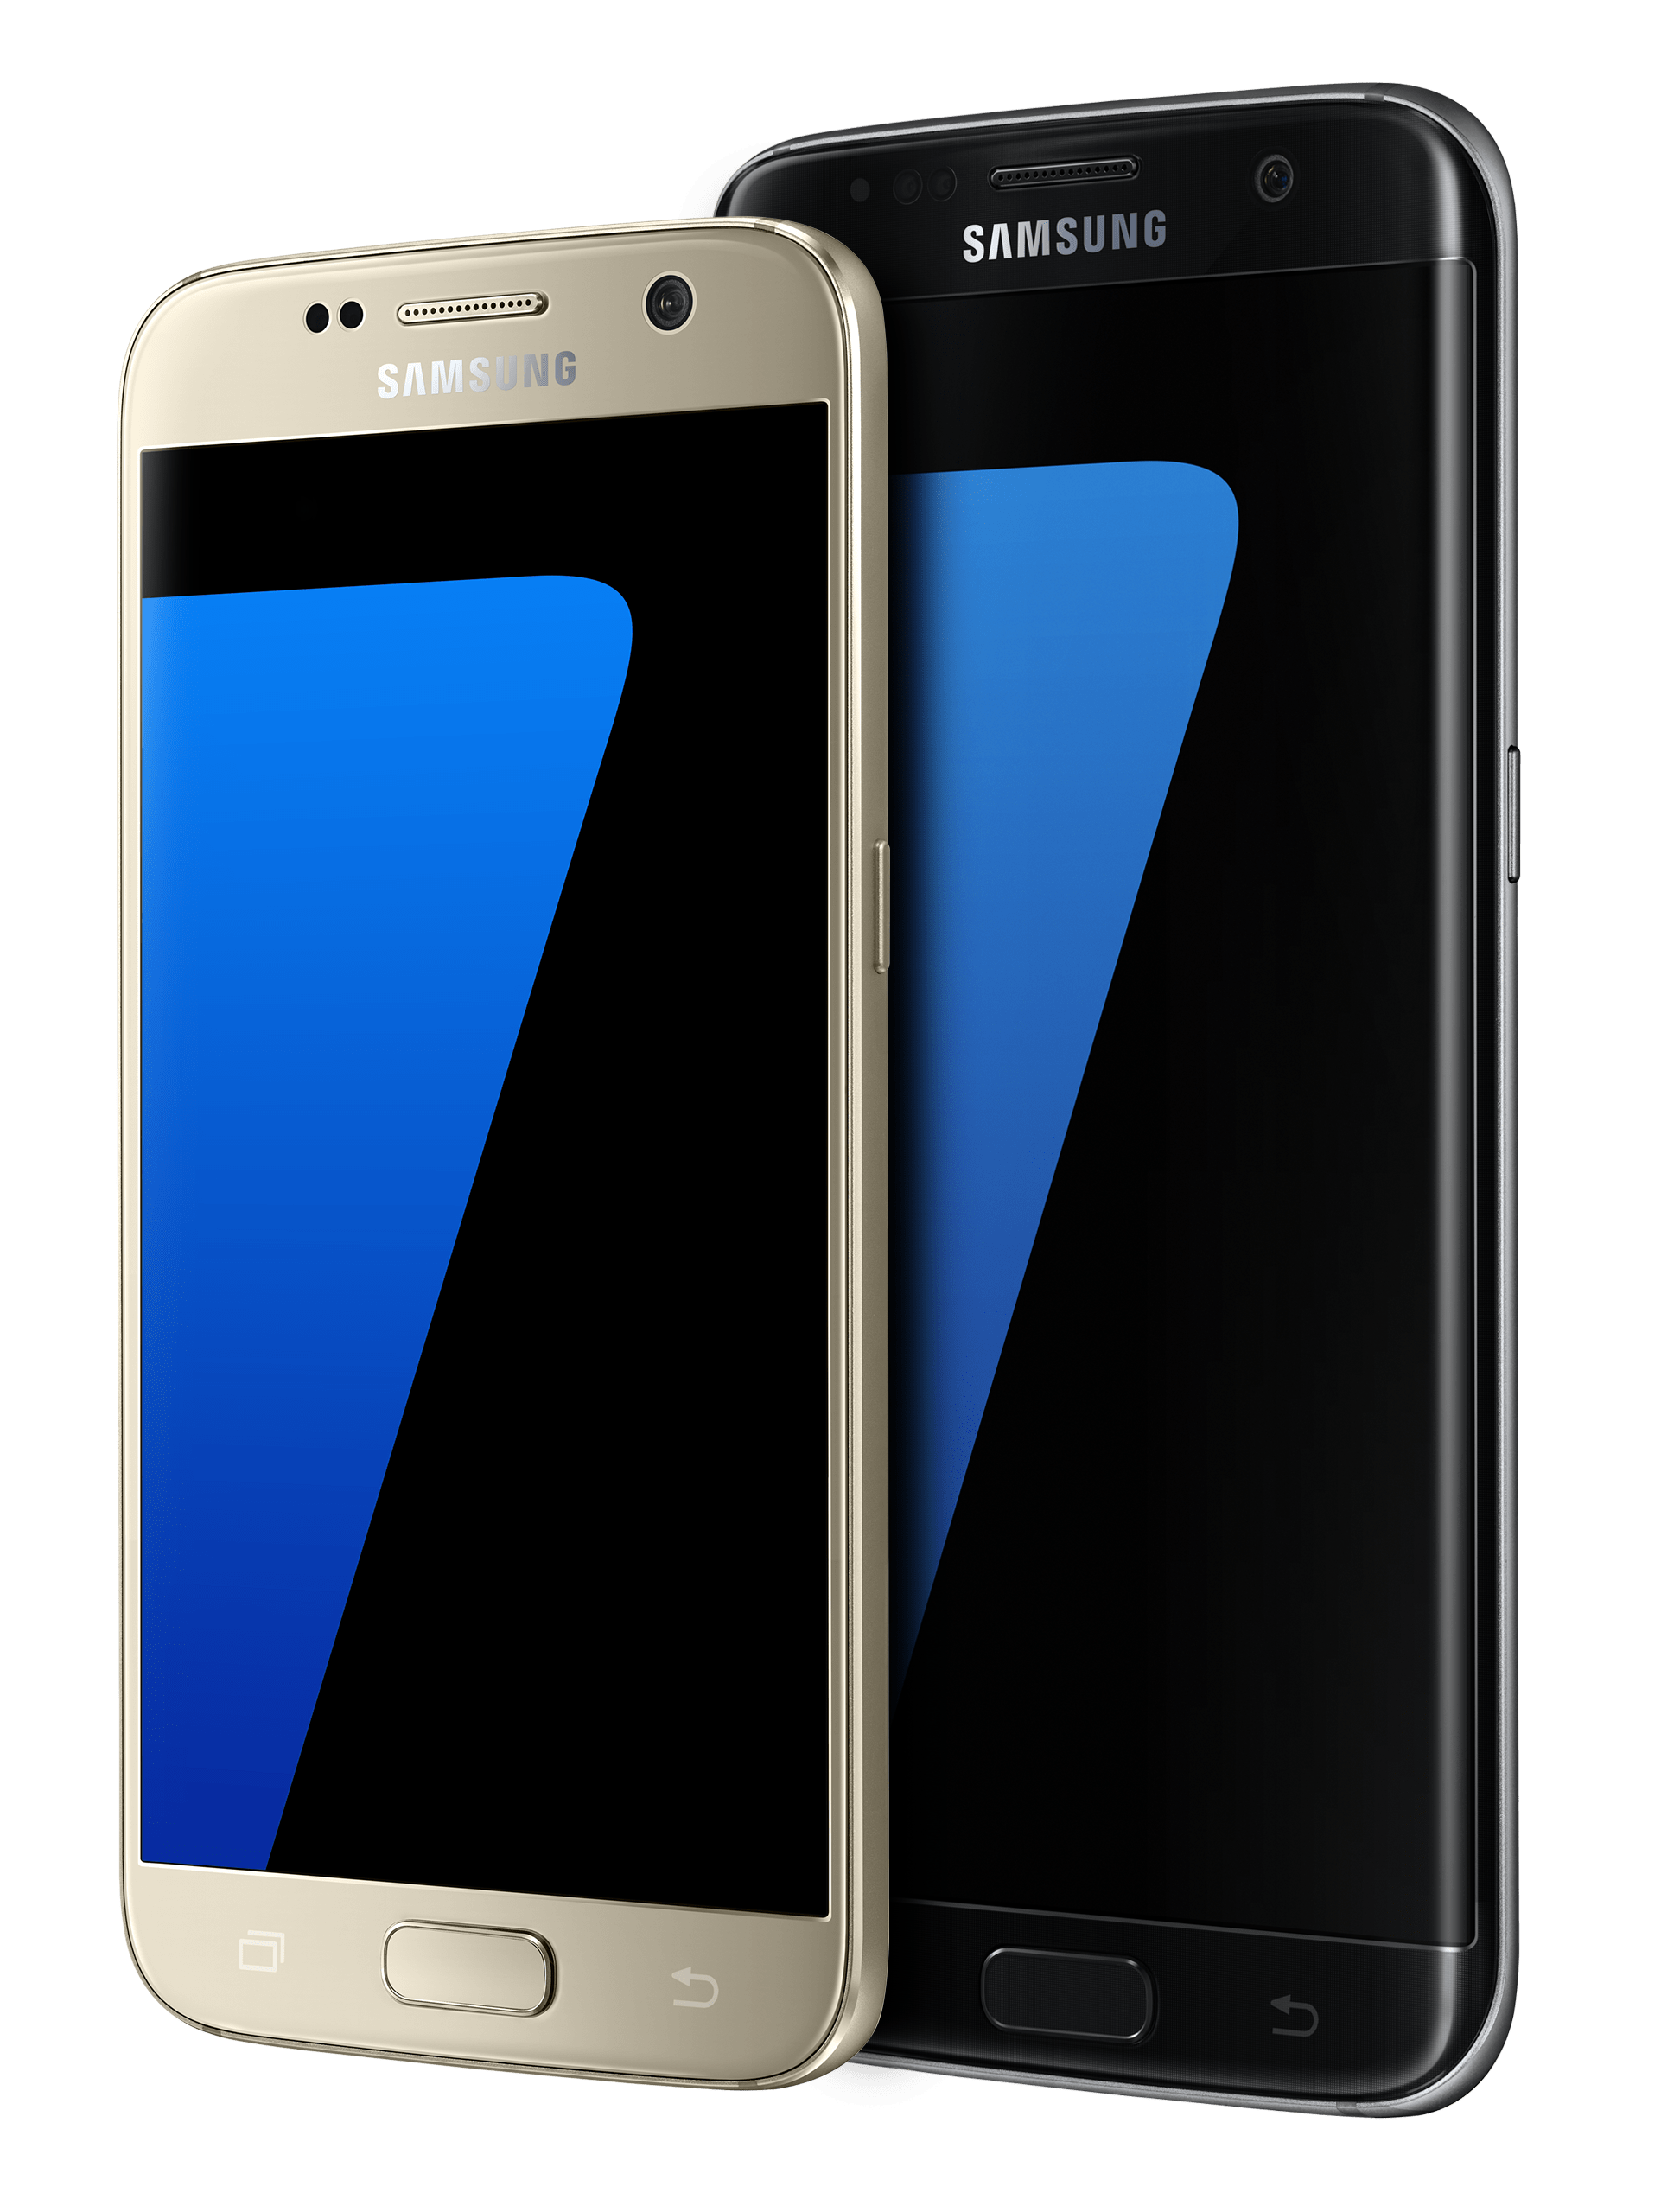 Samsung Png - This high quality free PNG image without any background is about  smartphone, android, google